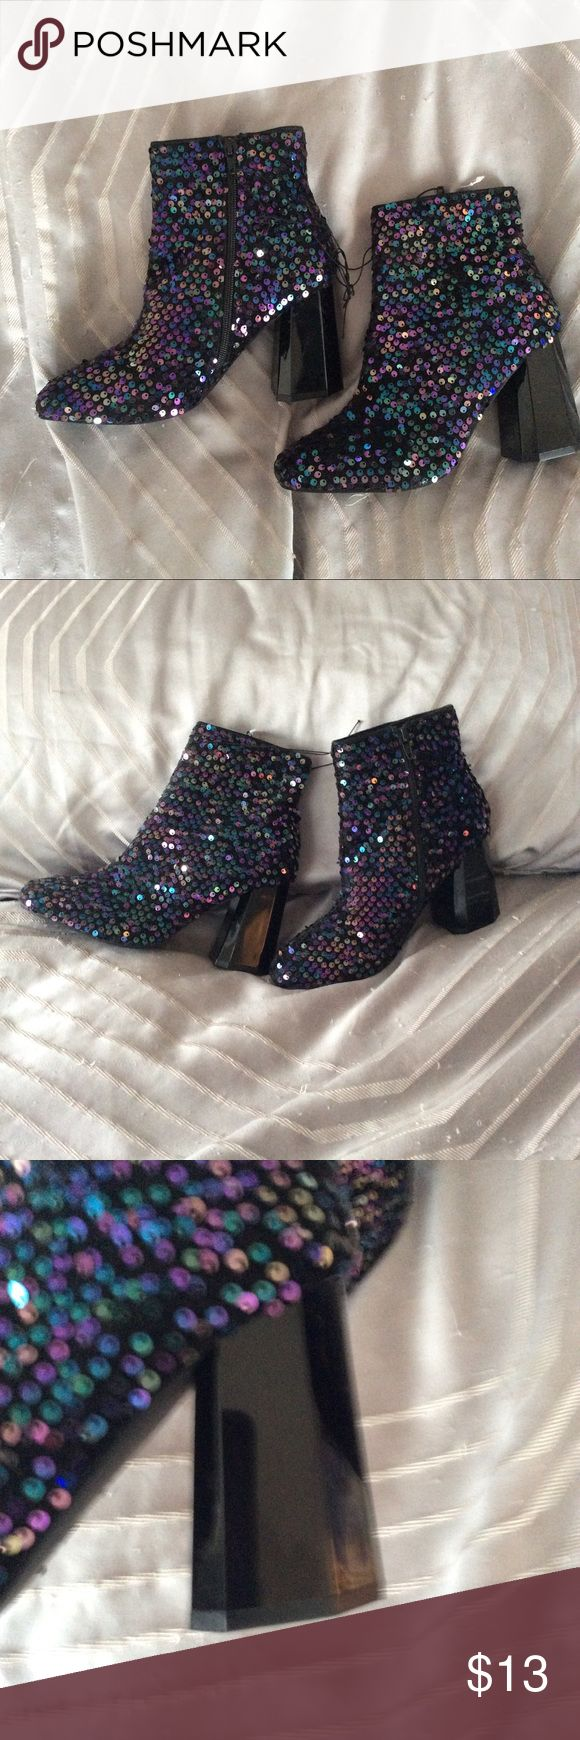 Nwt Sequin Iridescent Mermaid ankle boots booties NWT ANKLE BOITS BLACK WITH A MIX OF IRIDESCENT SEQUINS IN A MIX OF TEAL, PURPLE, AND BLACK.  3.5 Inch sculptural octagon shape herls.  Sizing is as follows: 39 fits an 8.5 to a 9 37 fits a 7 to 7.5 primark Shoes Ankle Boots & Booties